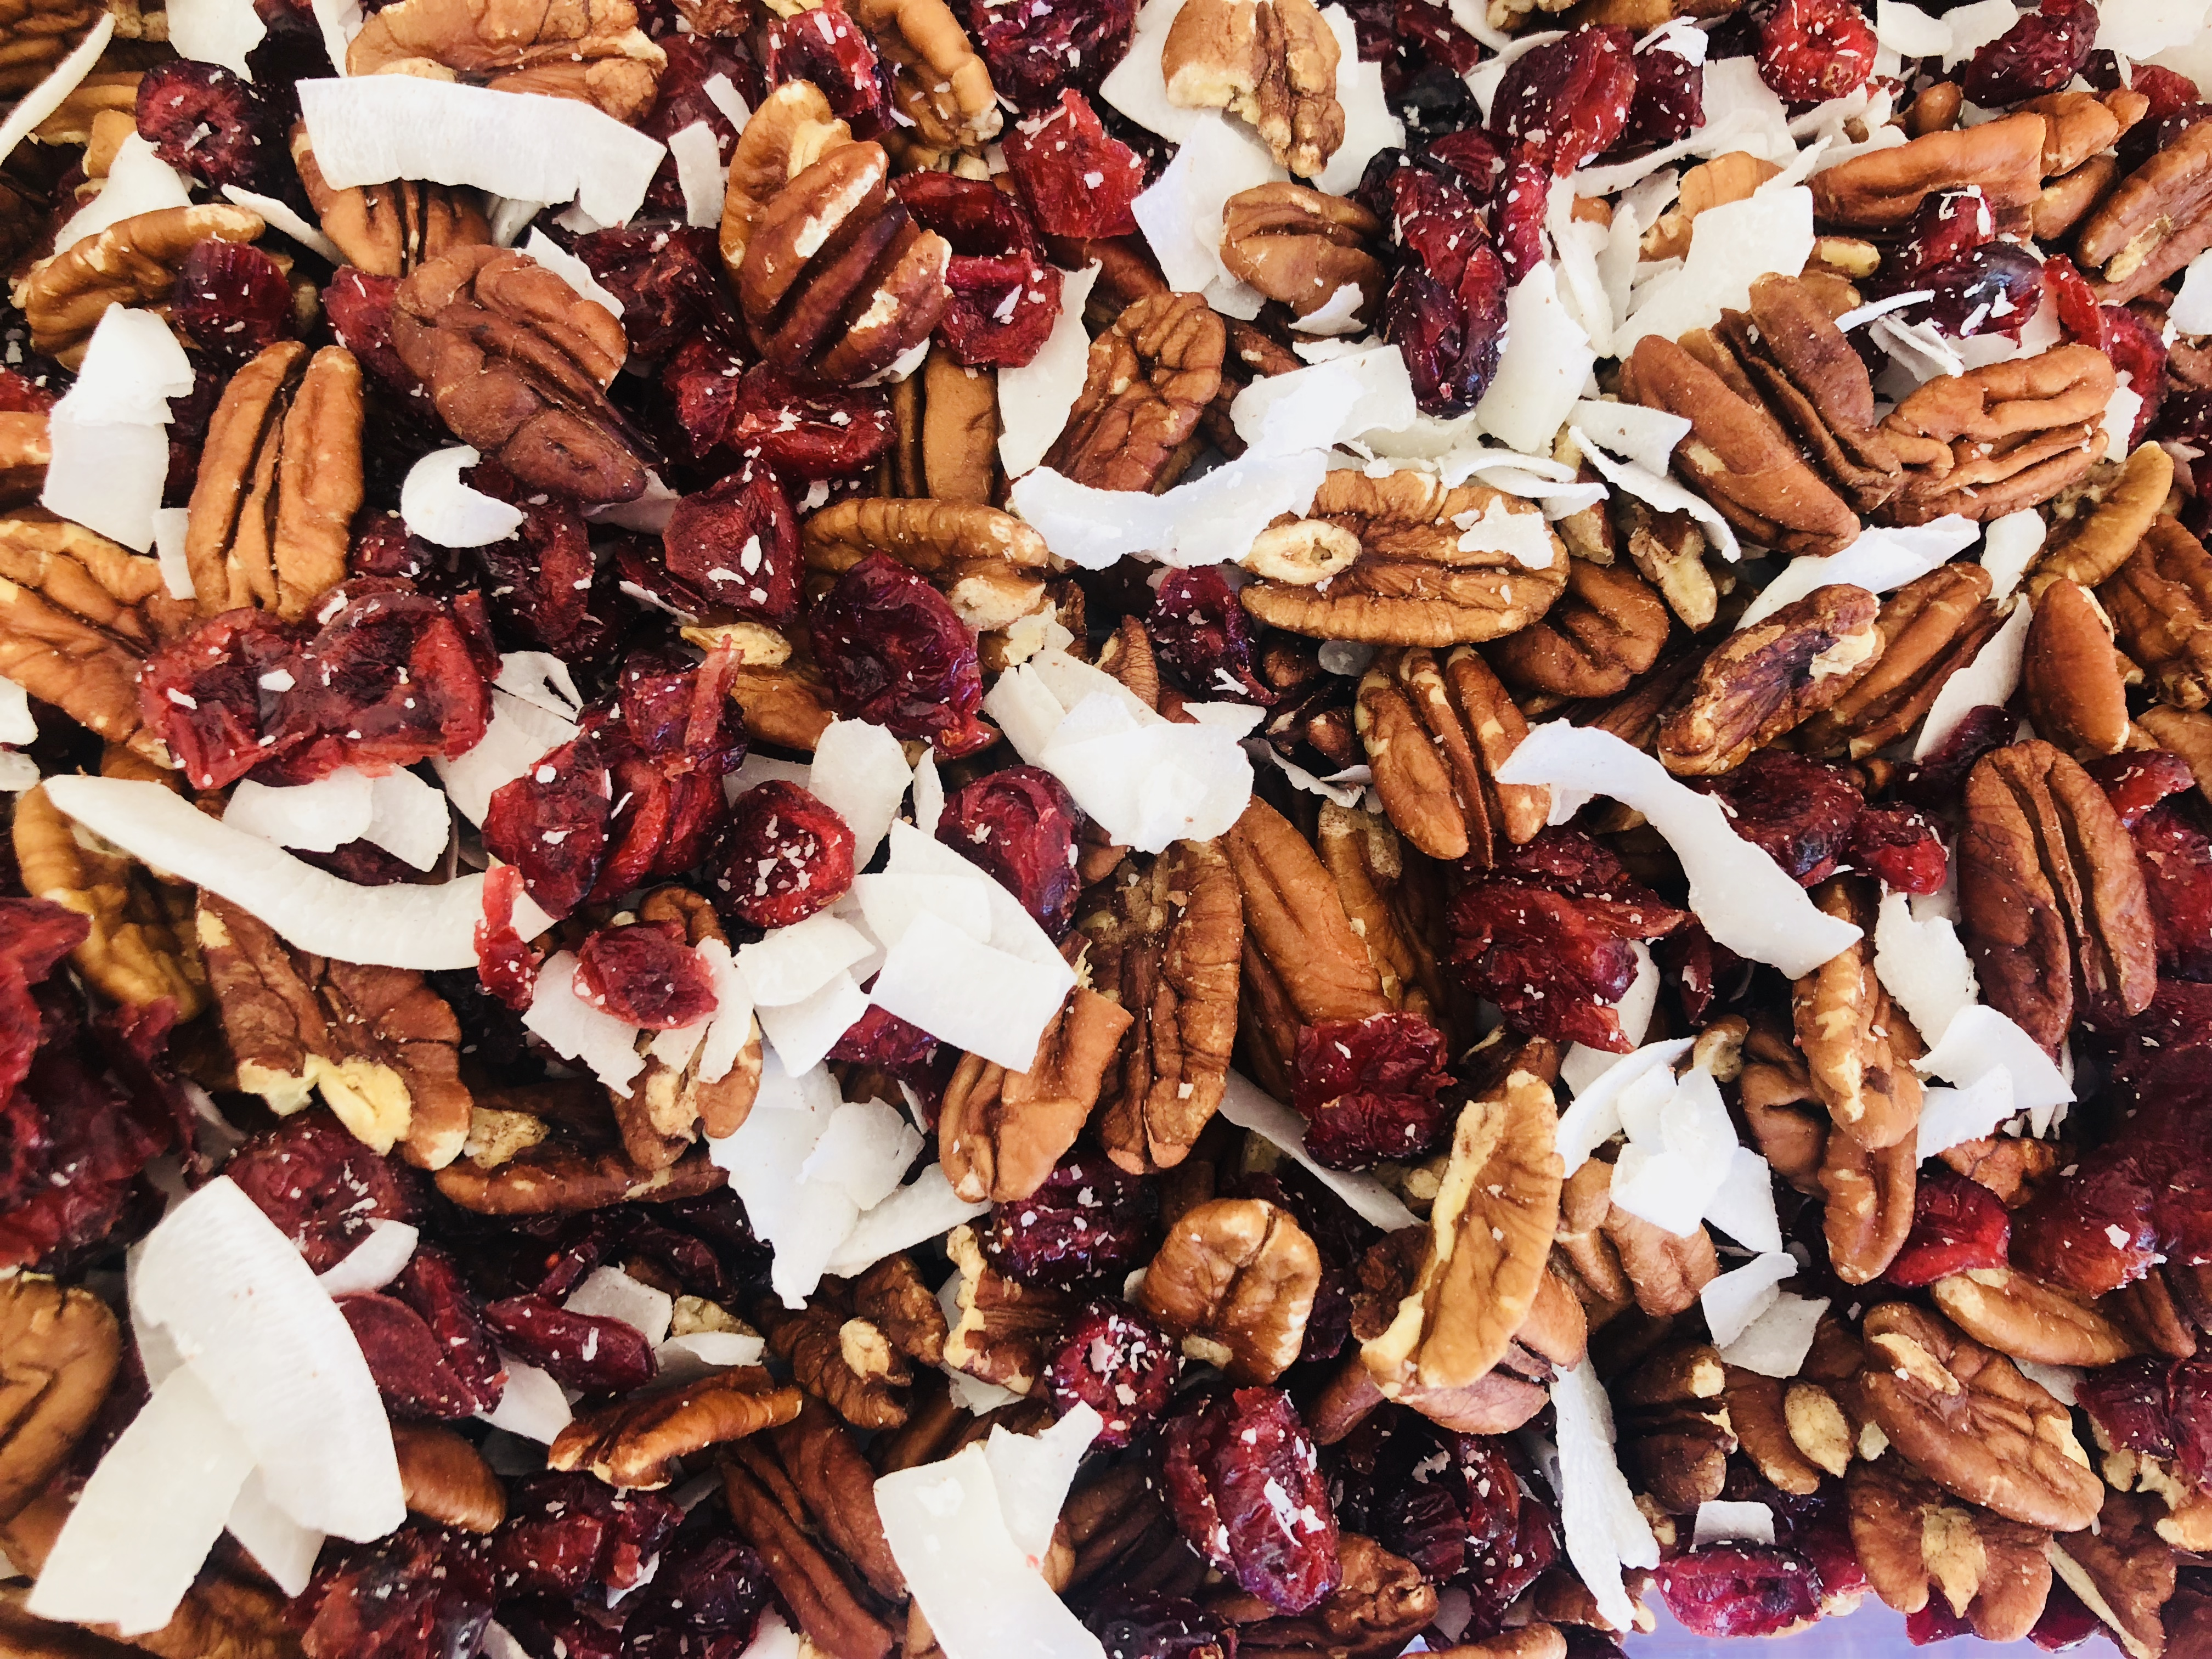 Nuts, trail mix, healthy snack, healthy holiday snack, healthy recipe